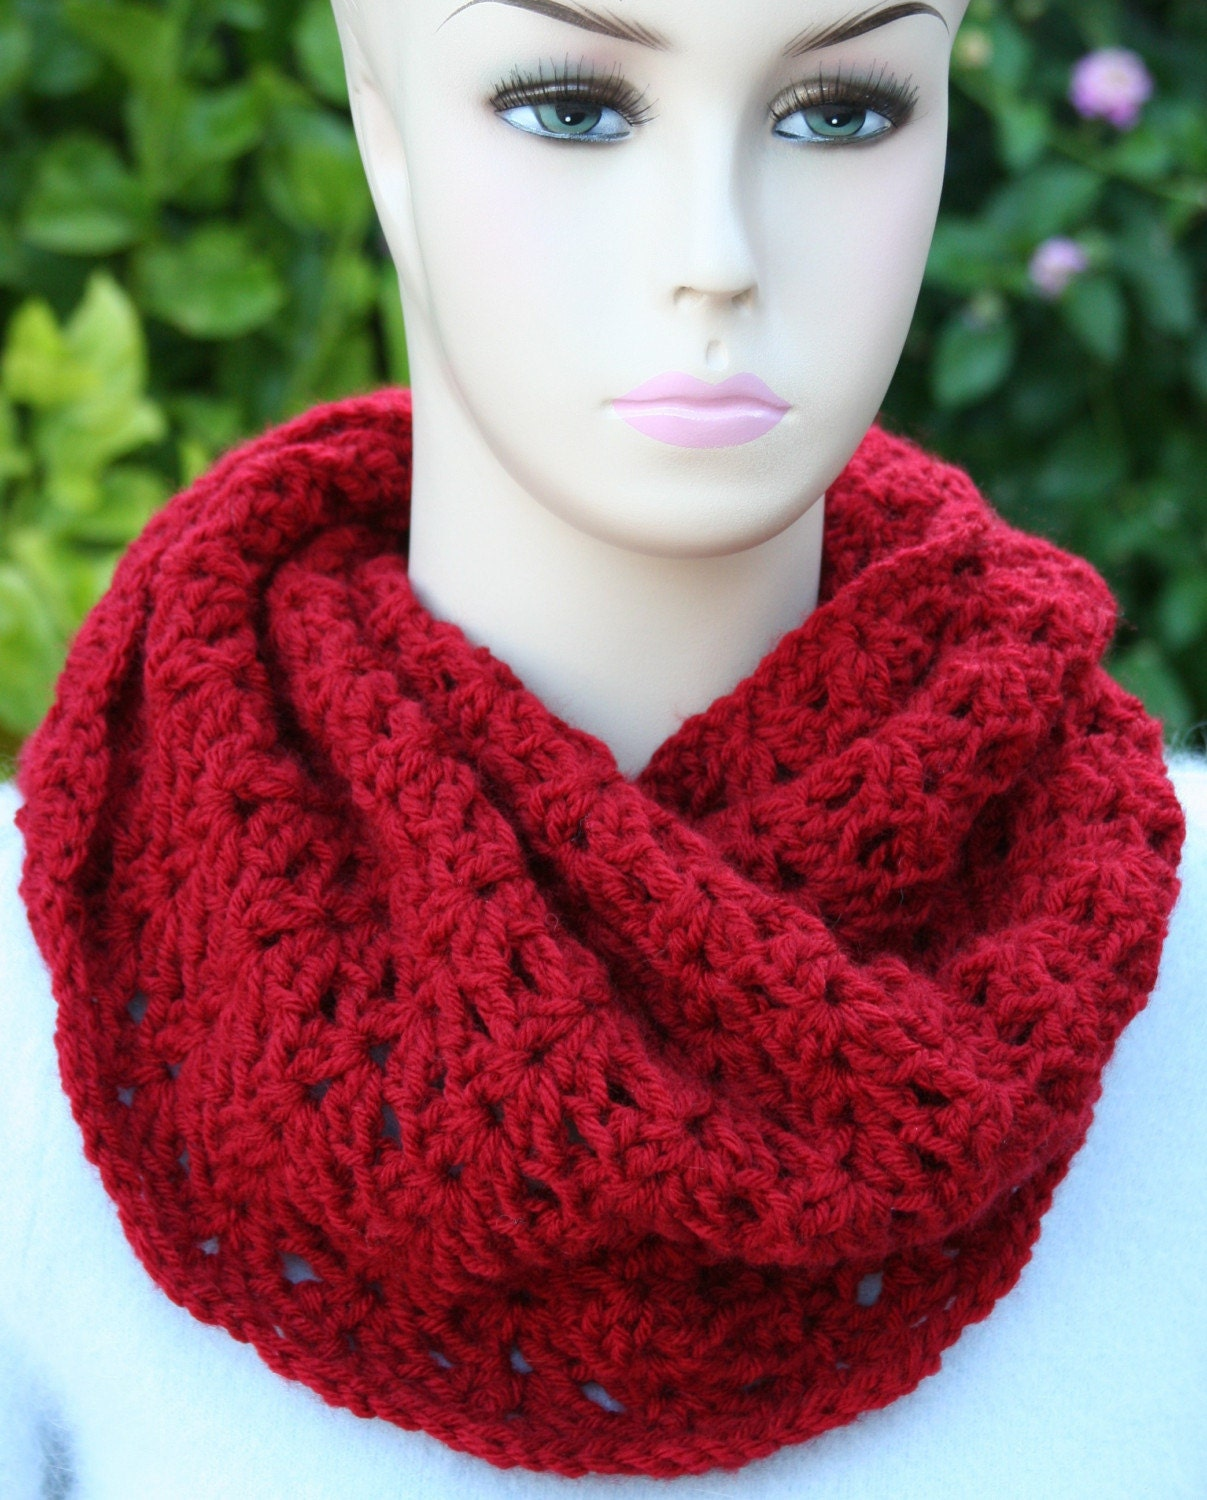 Crochet Cowl Pattern with Infinity Loop | JJCrochet's Blog